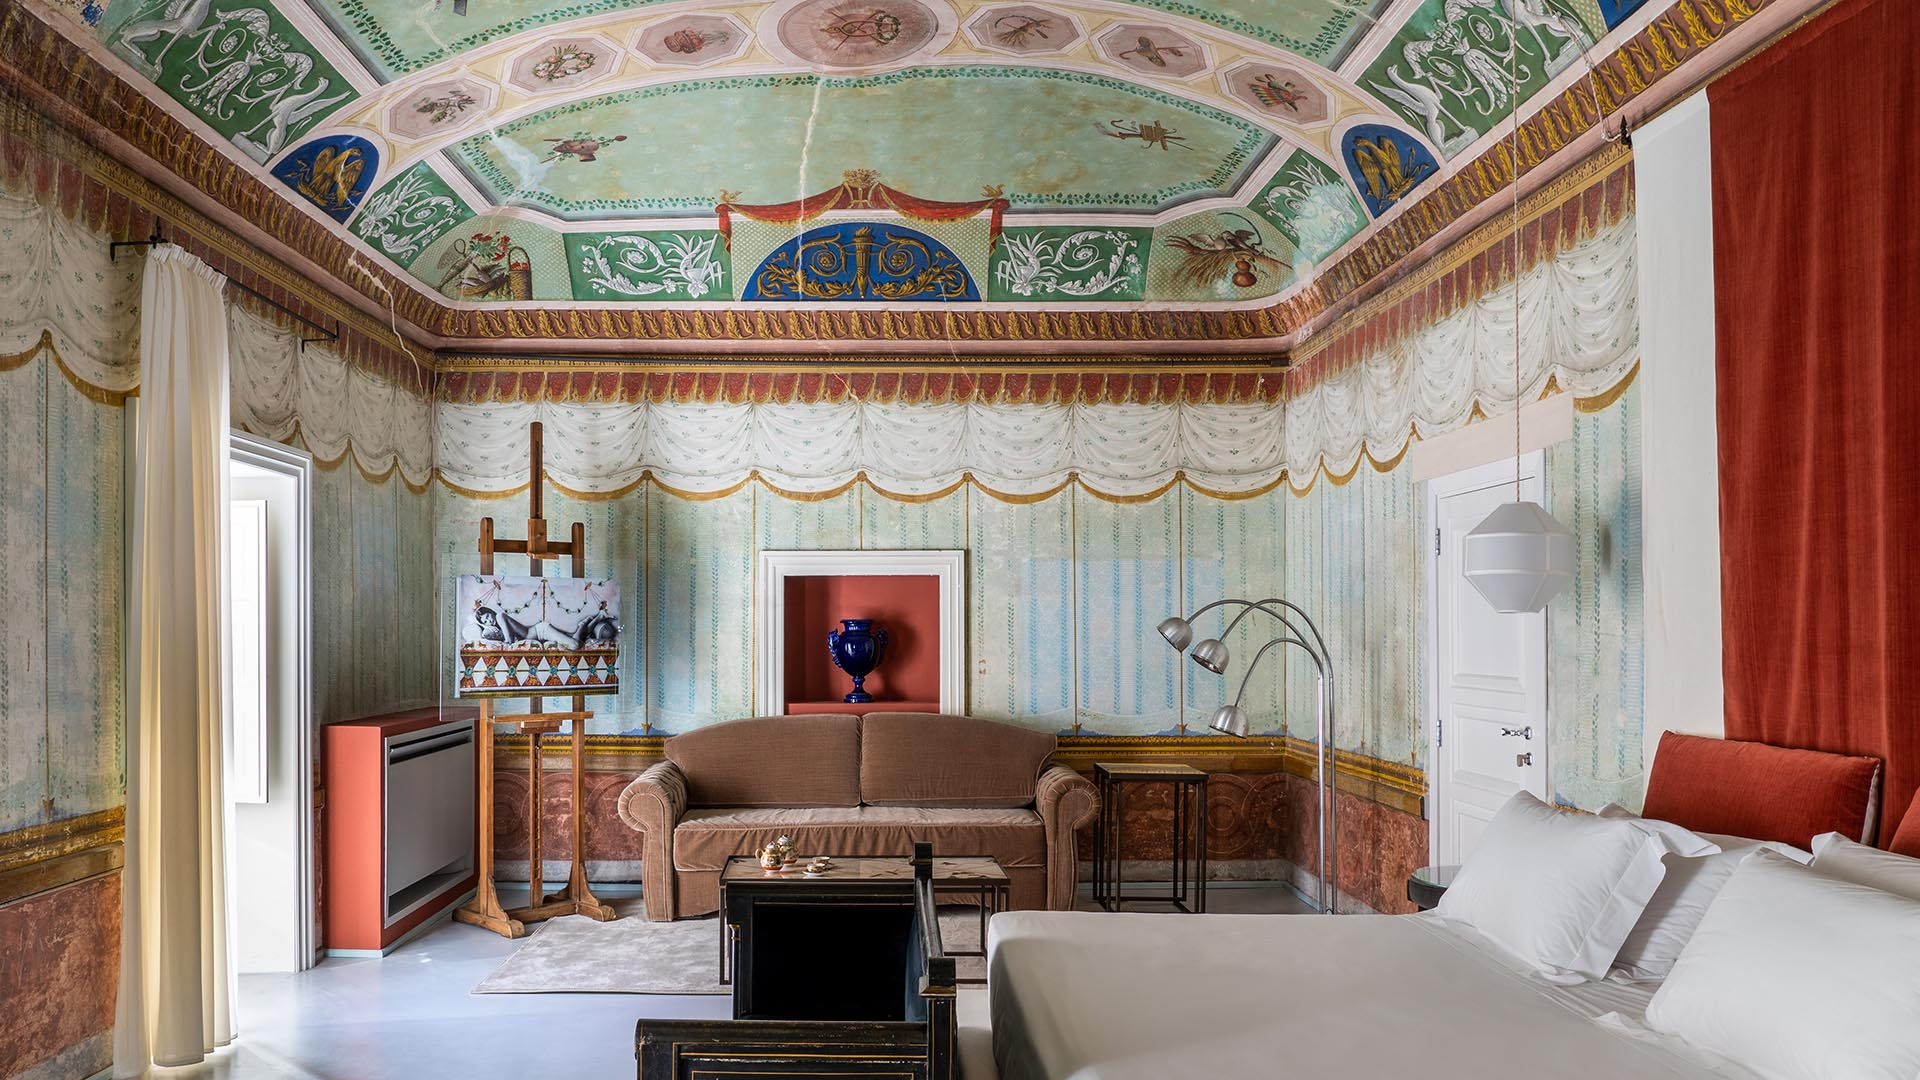 Baroque art and soul in Sicily's Noto